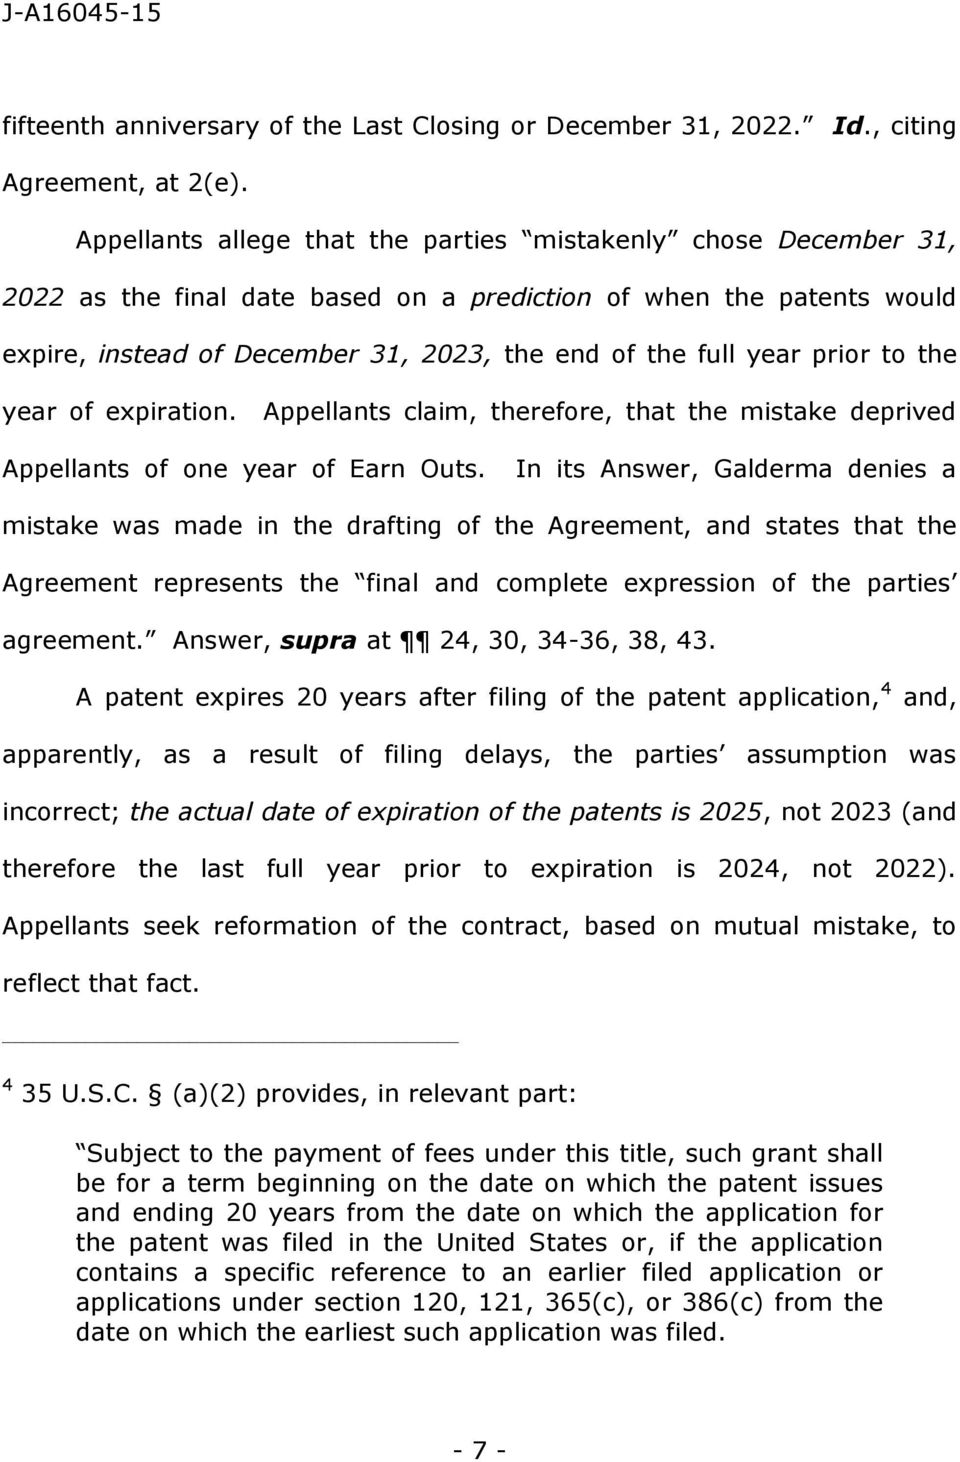 prior to the year of expiration. Appellants claim, therefore, that the mistake deprived Appellants of one year of Earn Outs.